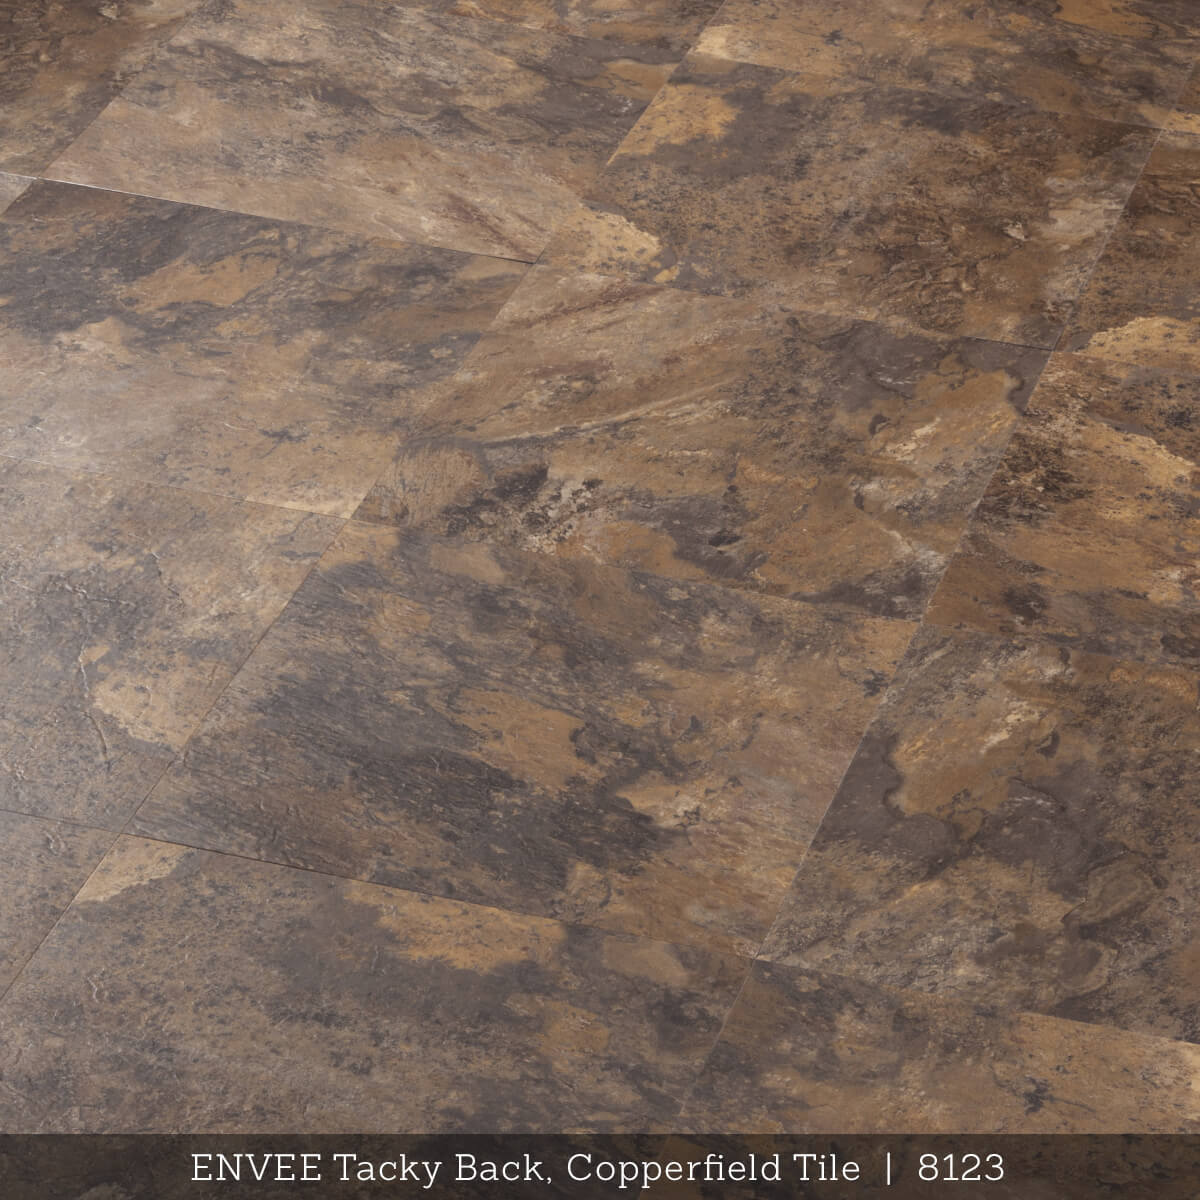 Envee Tacky Back, Copperfield Tile